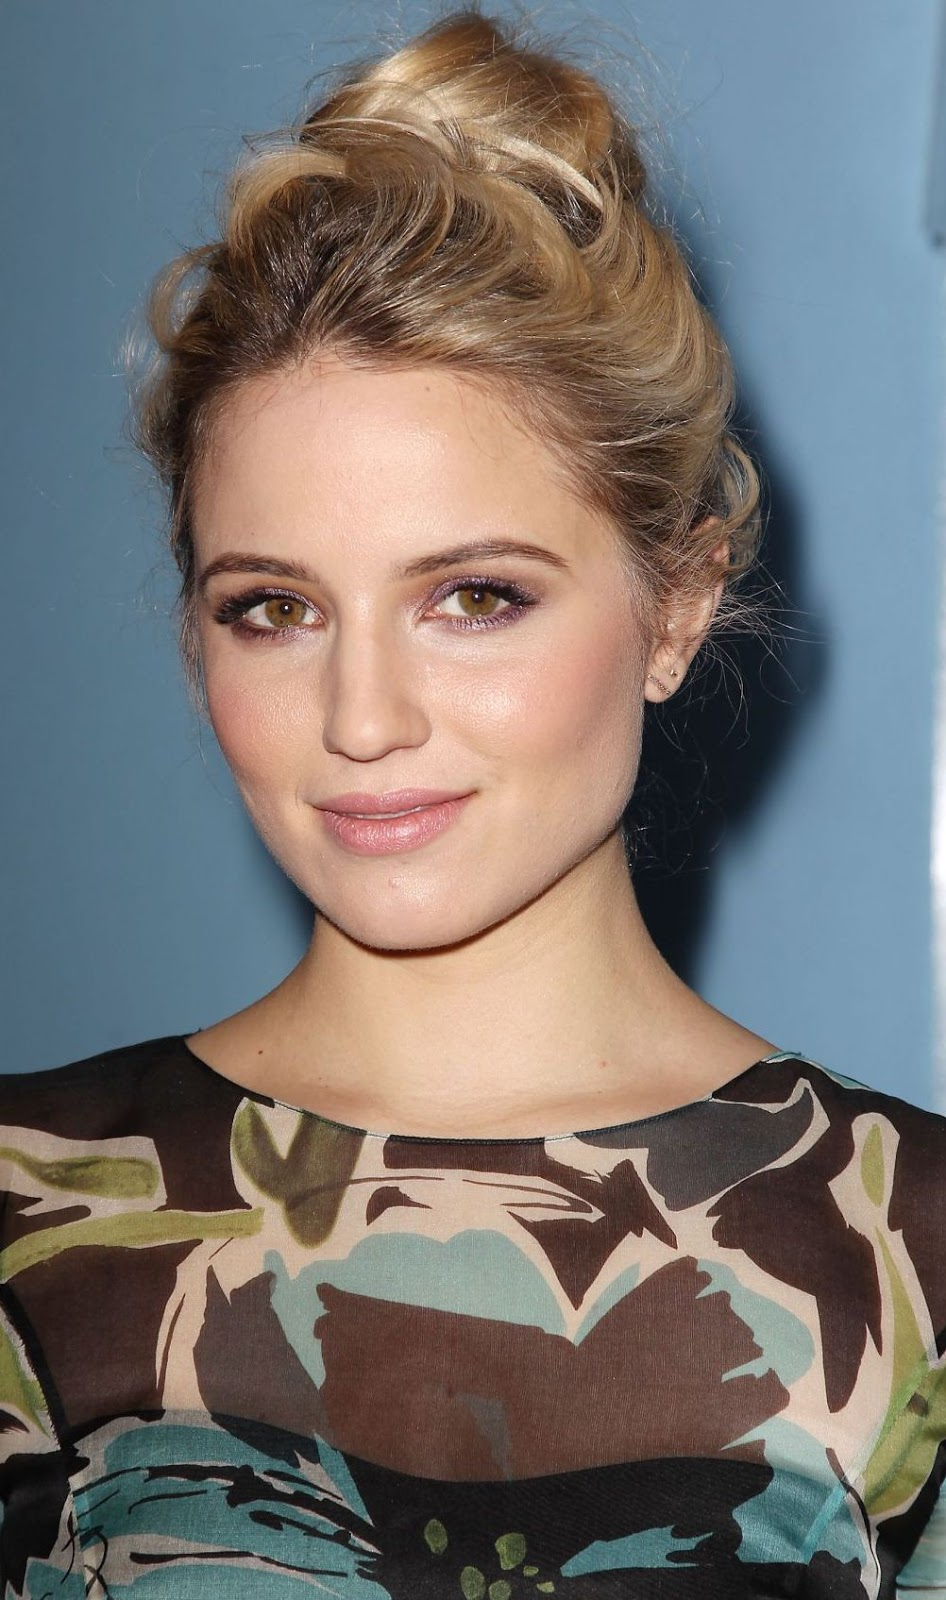 Dianna Agron born April 30, 1986 (age 32) naked (44 photos), Tits, Cleavage, Feet, underwear 2020